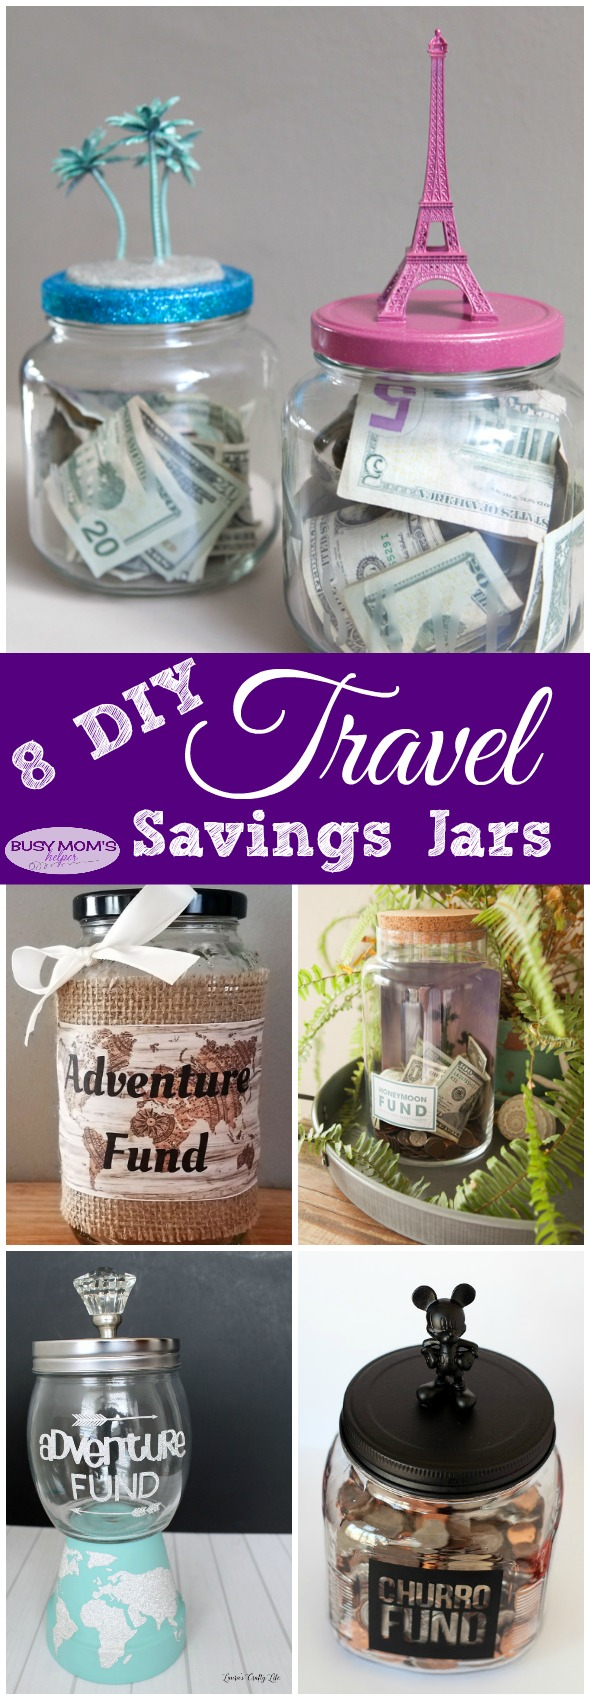 8 DIY Travel Savings Jars #roundup #travel #craft #diy #savings #money #savingsjar